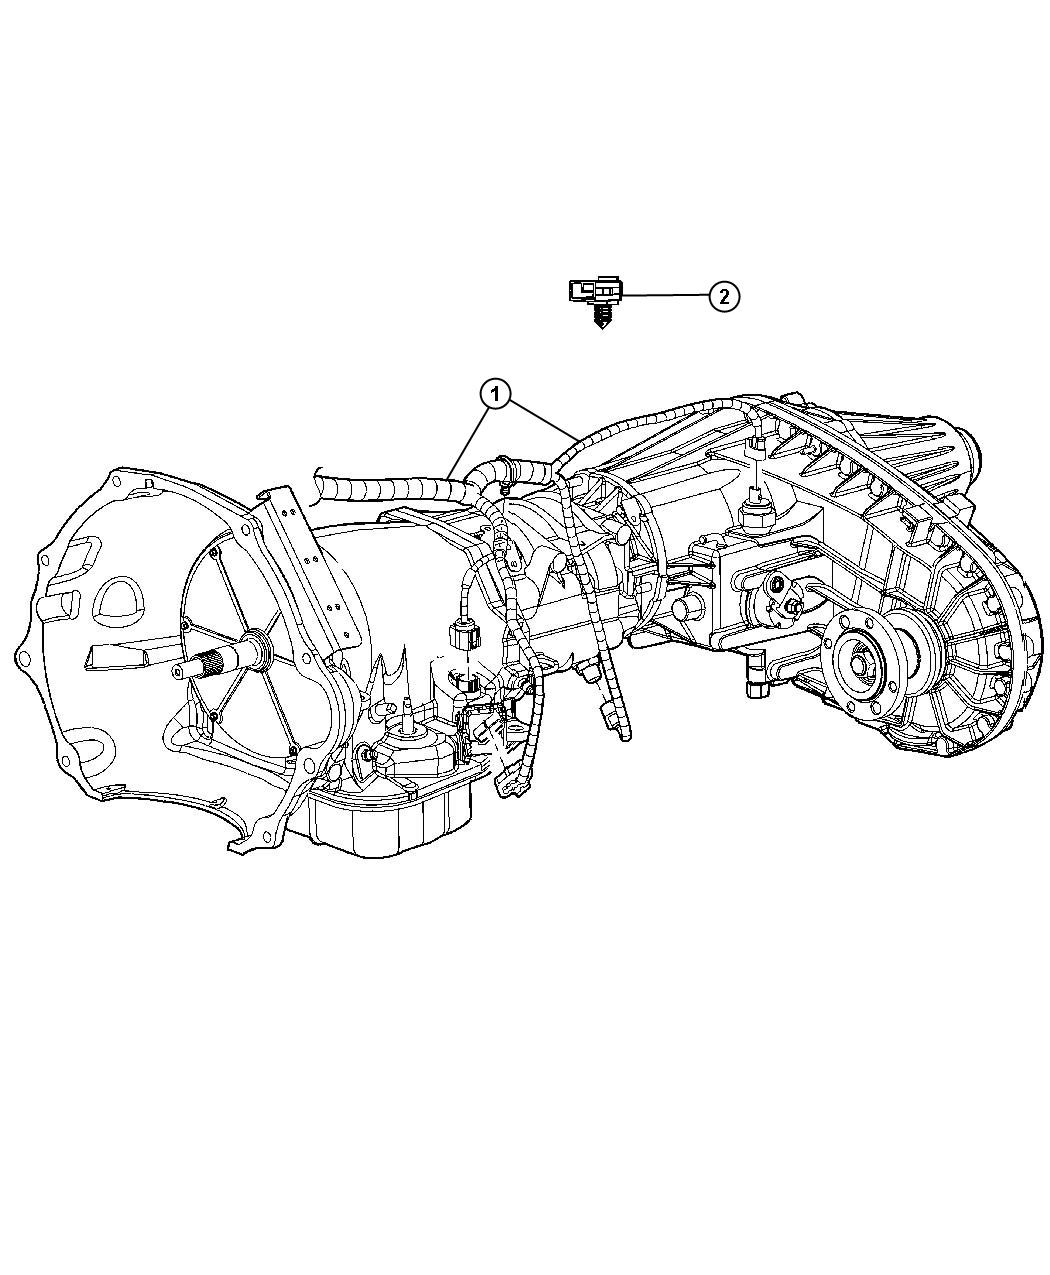 Dodge Ram Wiring Transmission Shift Transfer